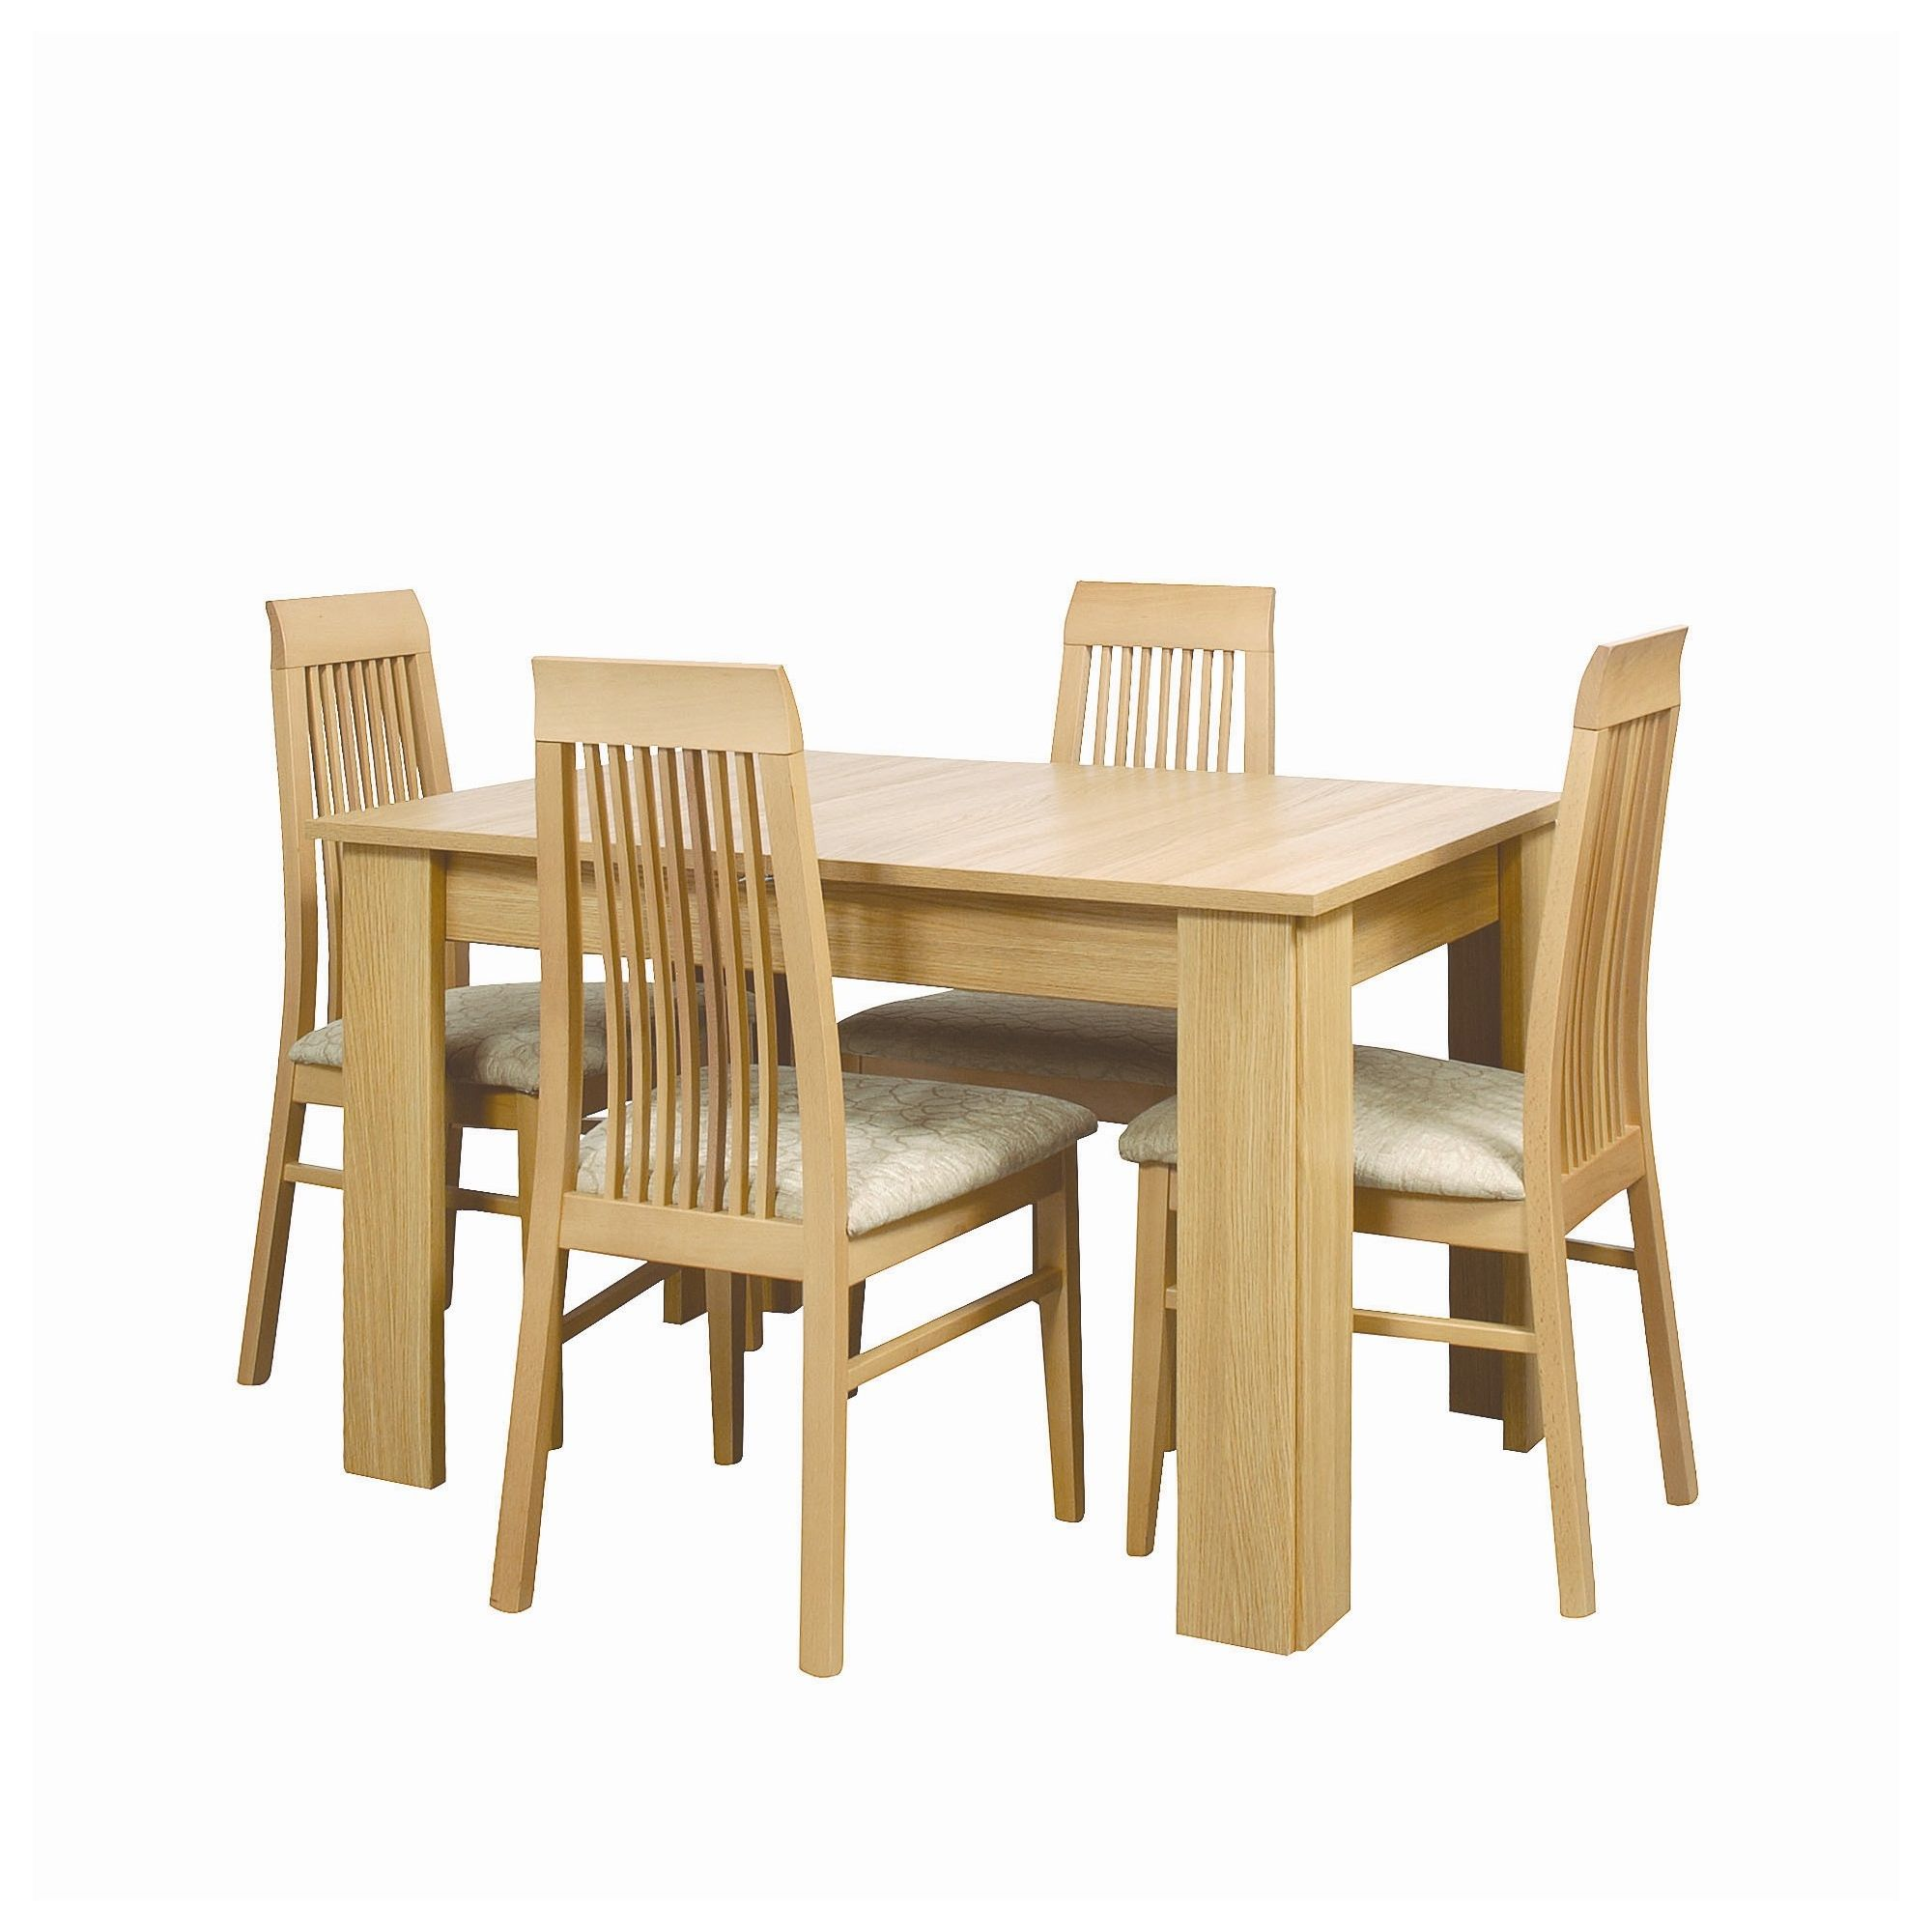 Caxton Huxley Dining Table Set with 4 Slatted Back Chairs in Light Oak at Tesco Direct